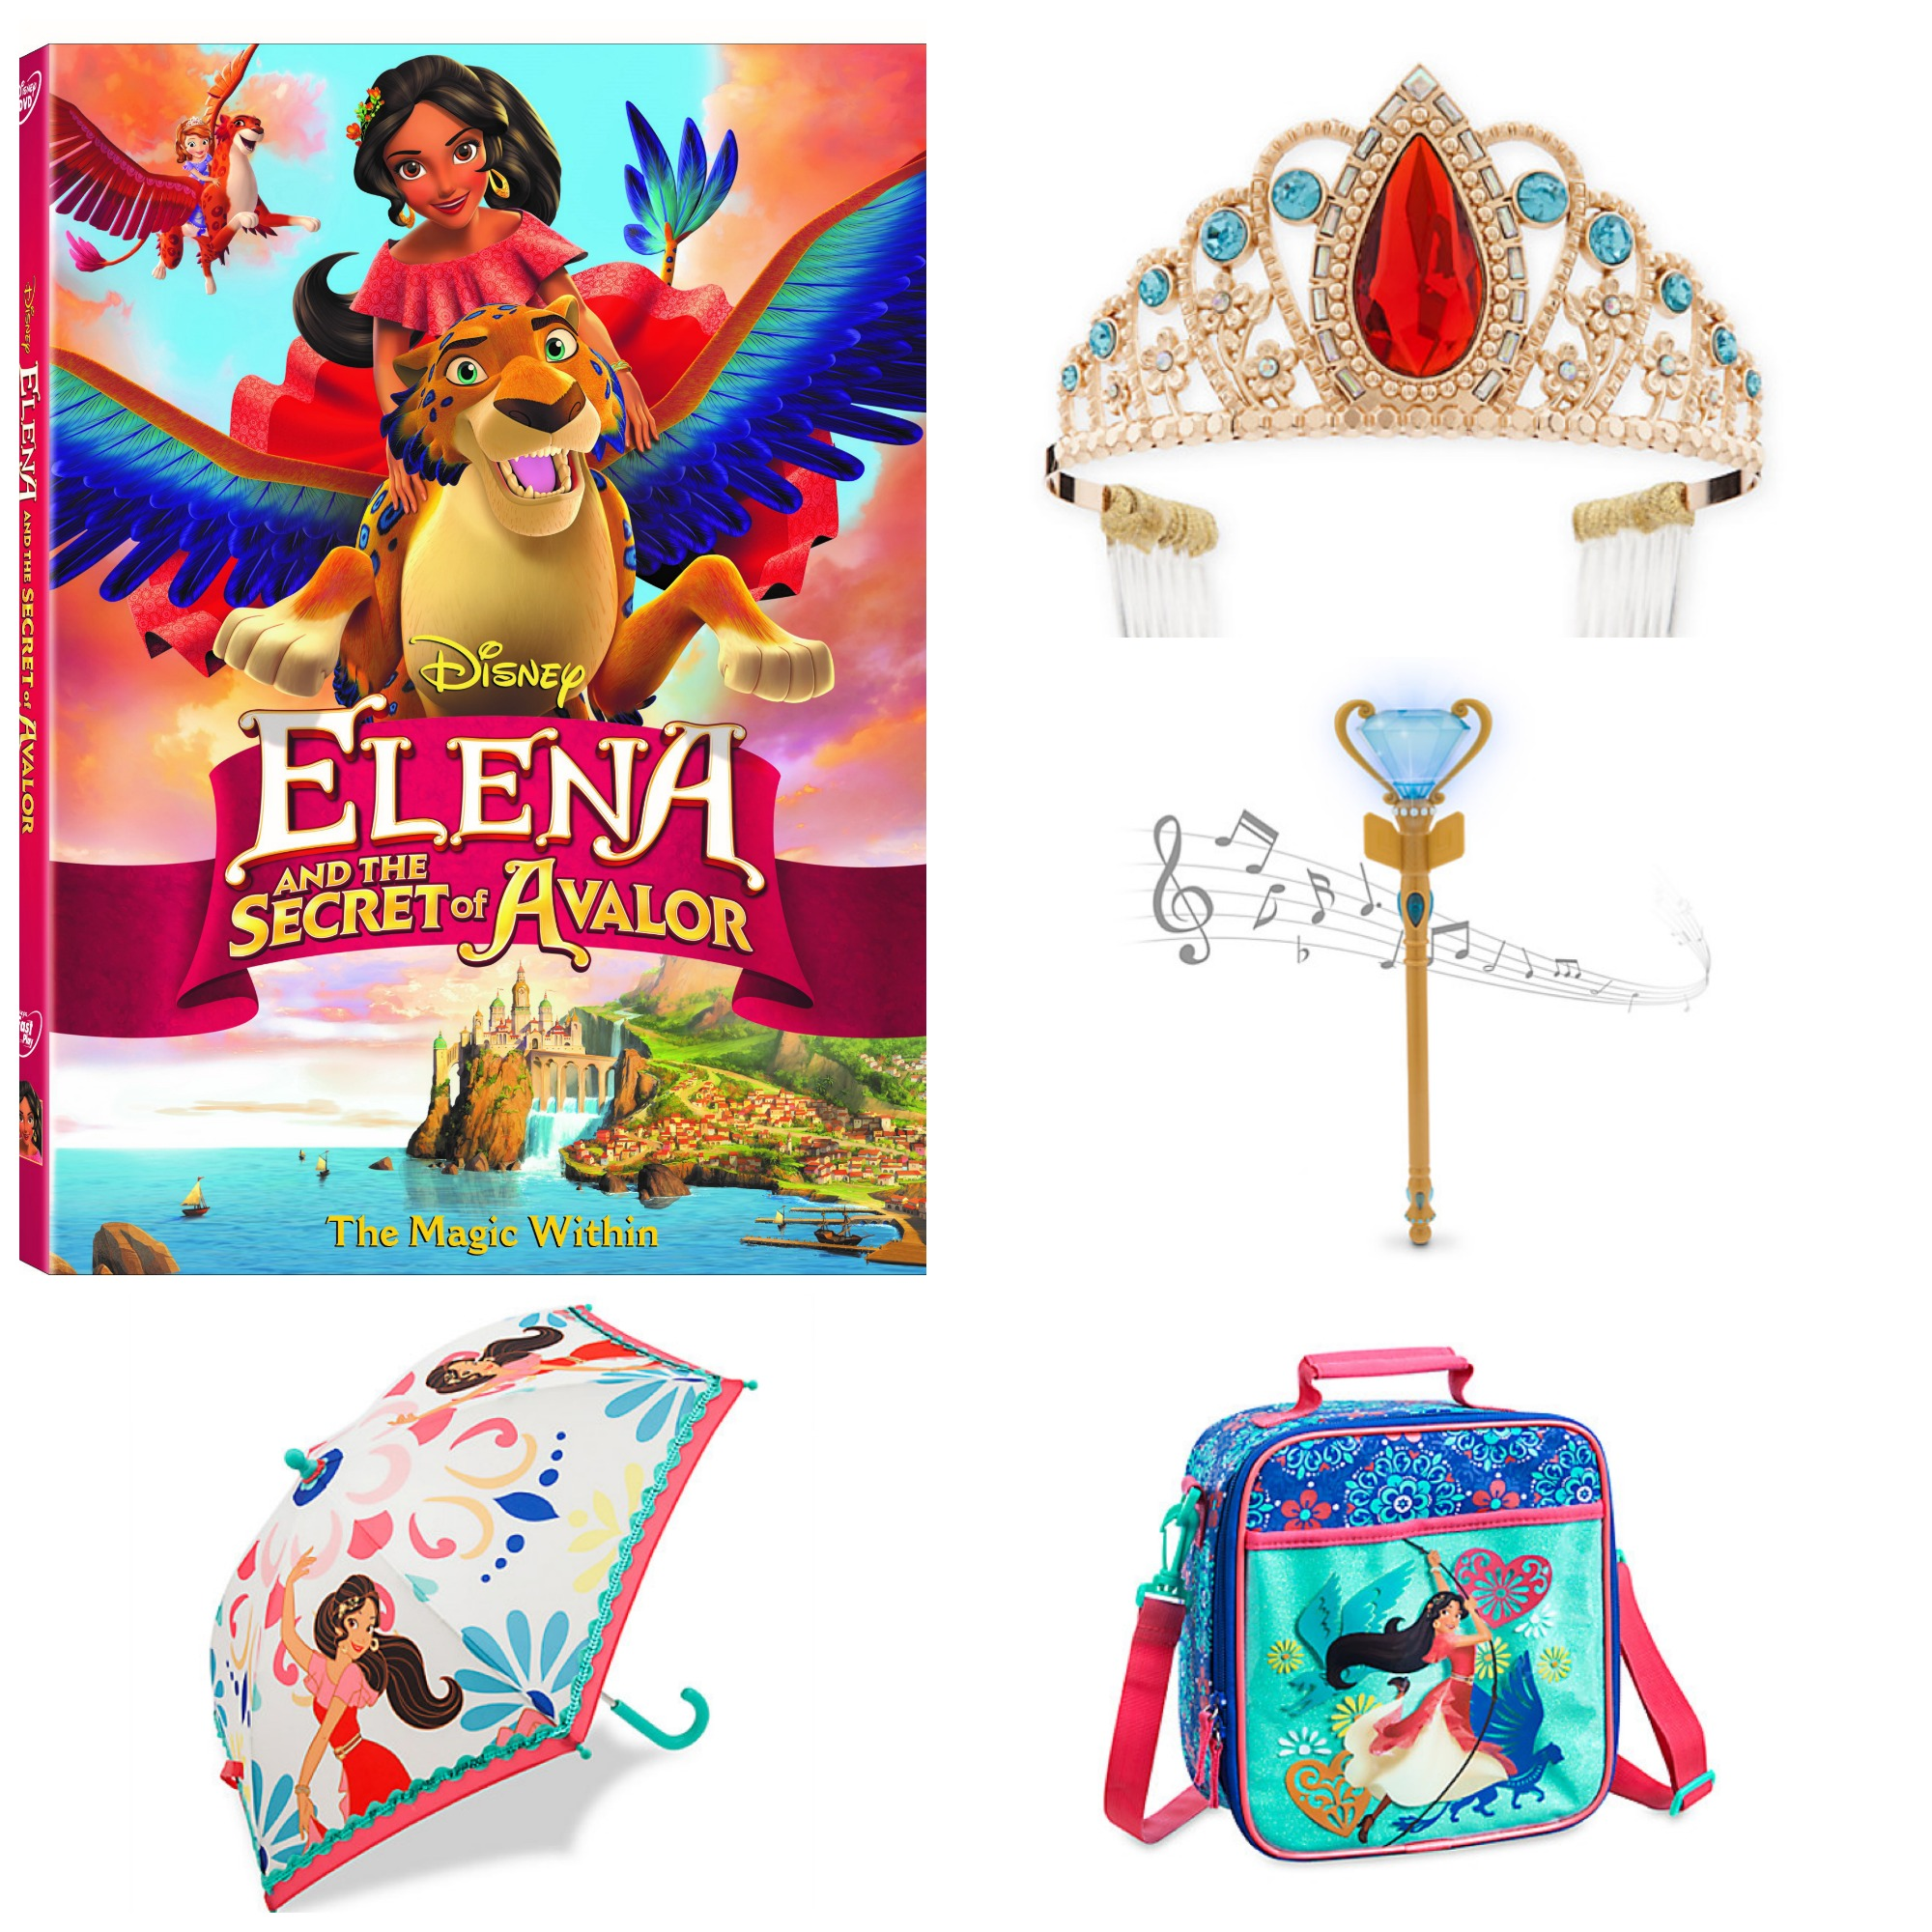 Elena and the Secret of Avalor Giveaway